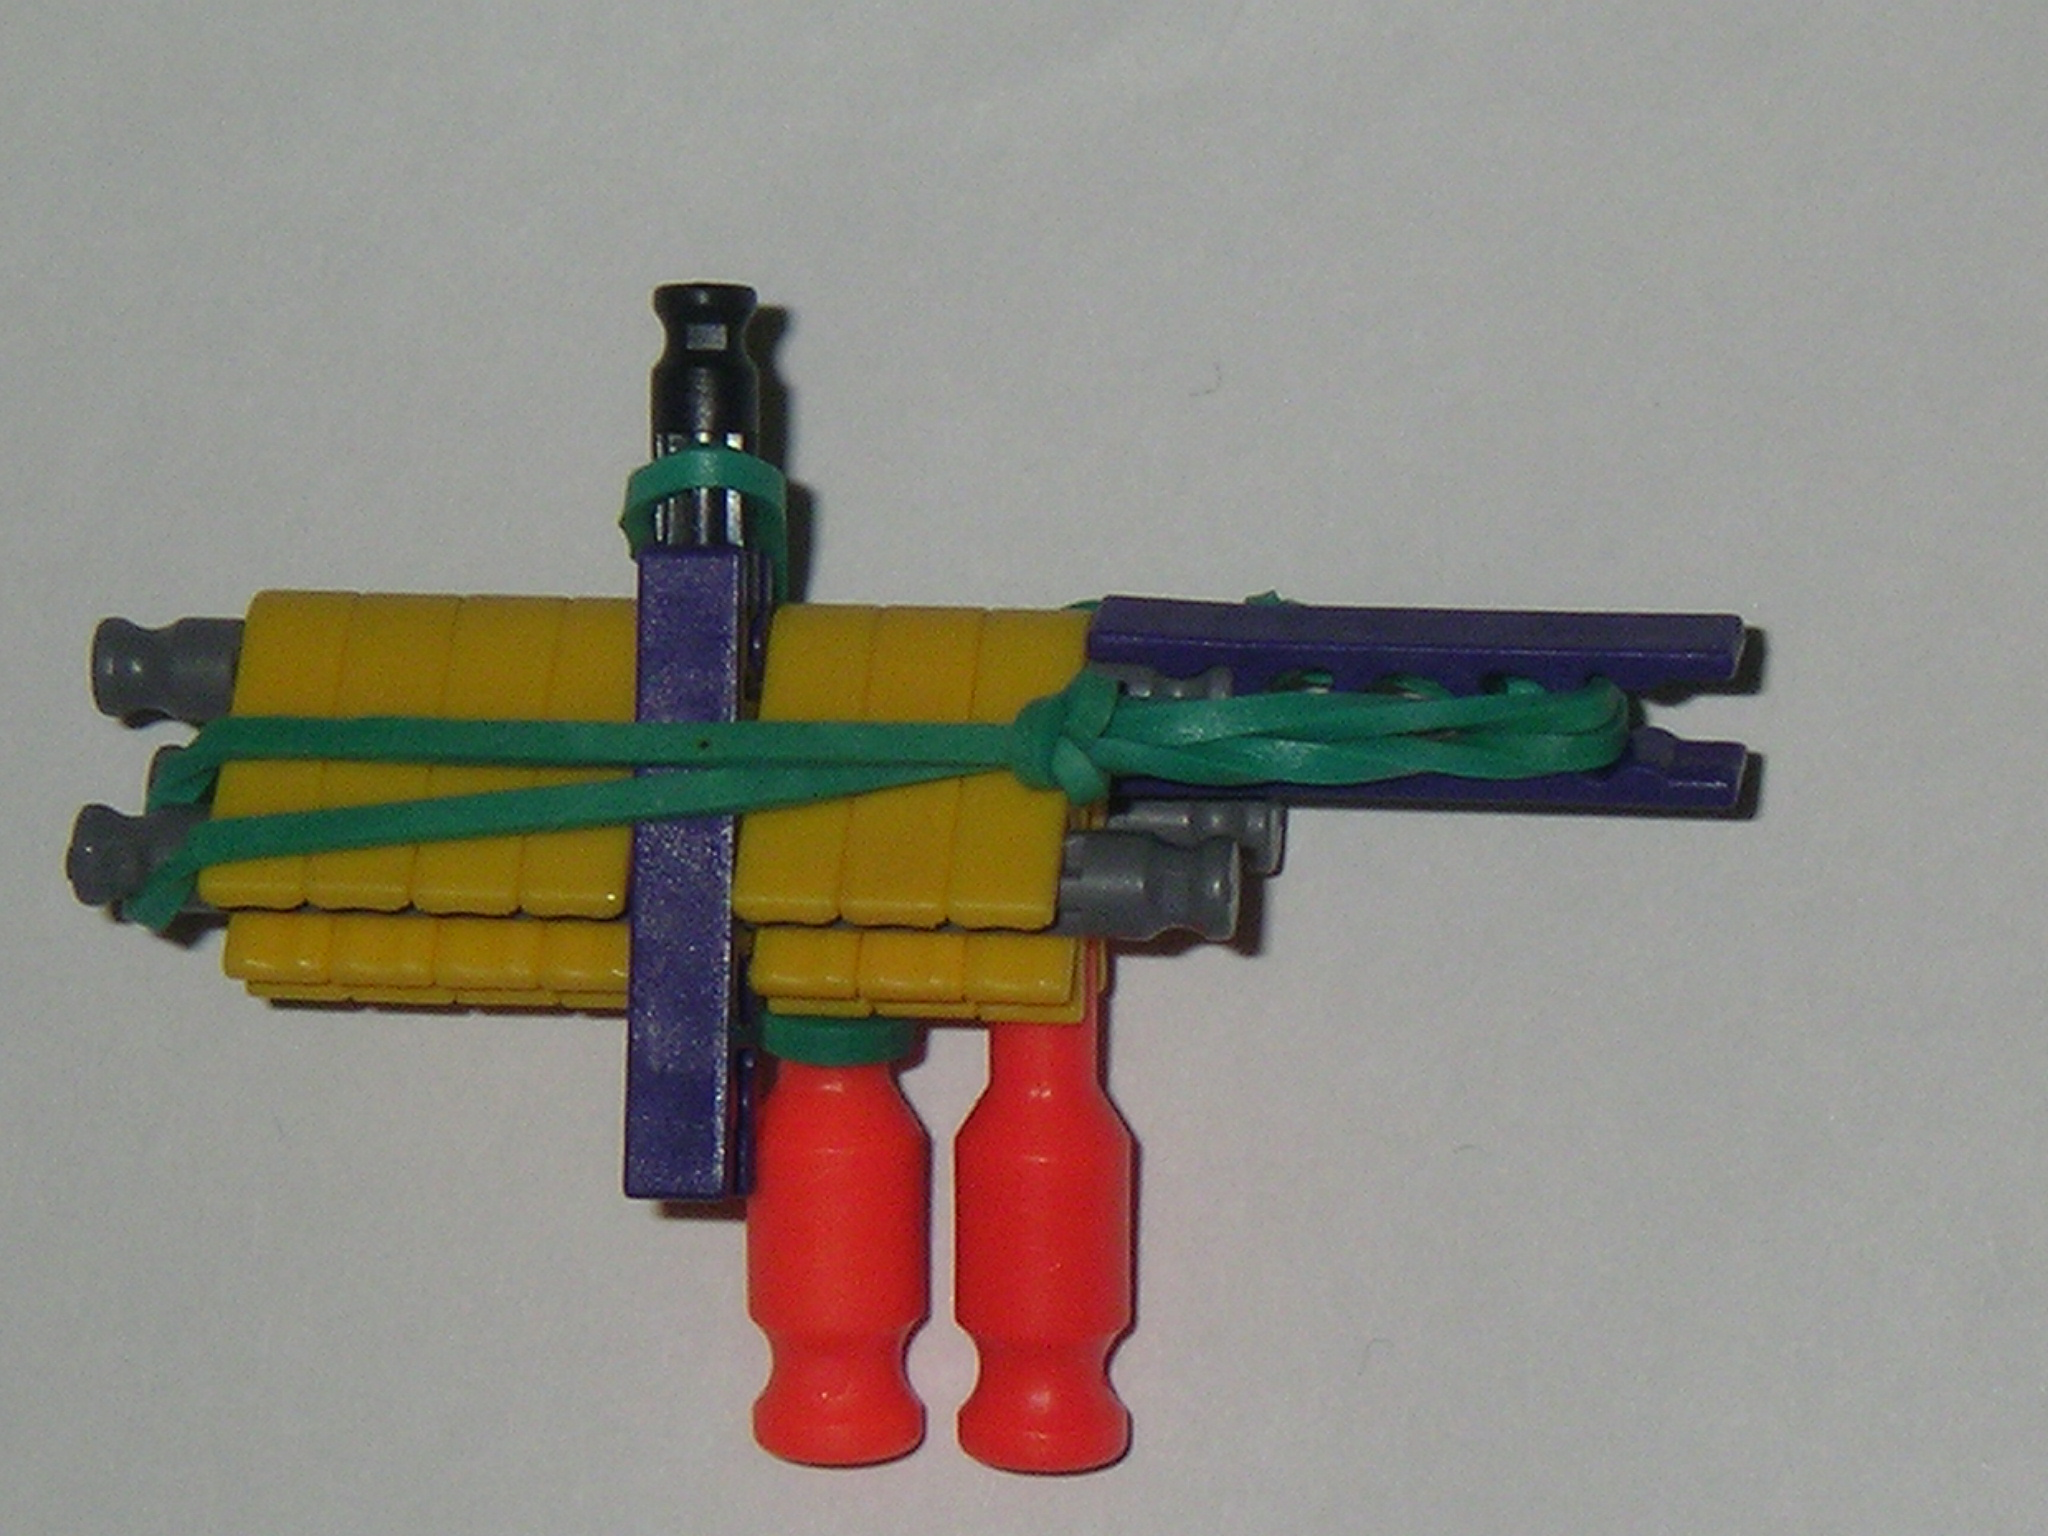 Picture of How to Make a Mini Pocket Knex Gun